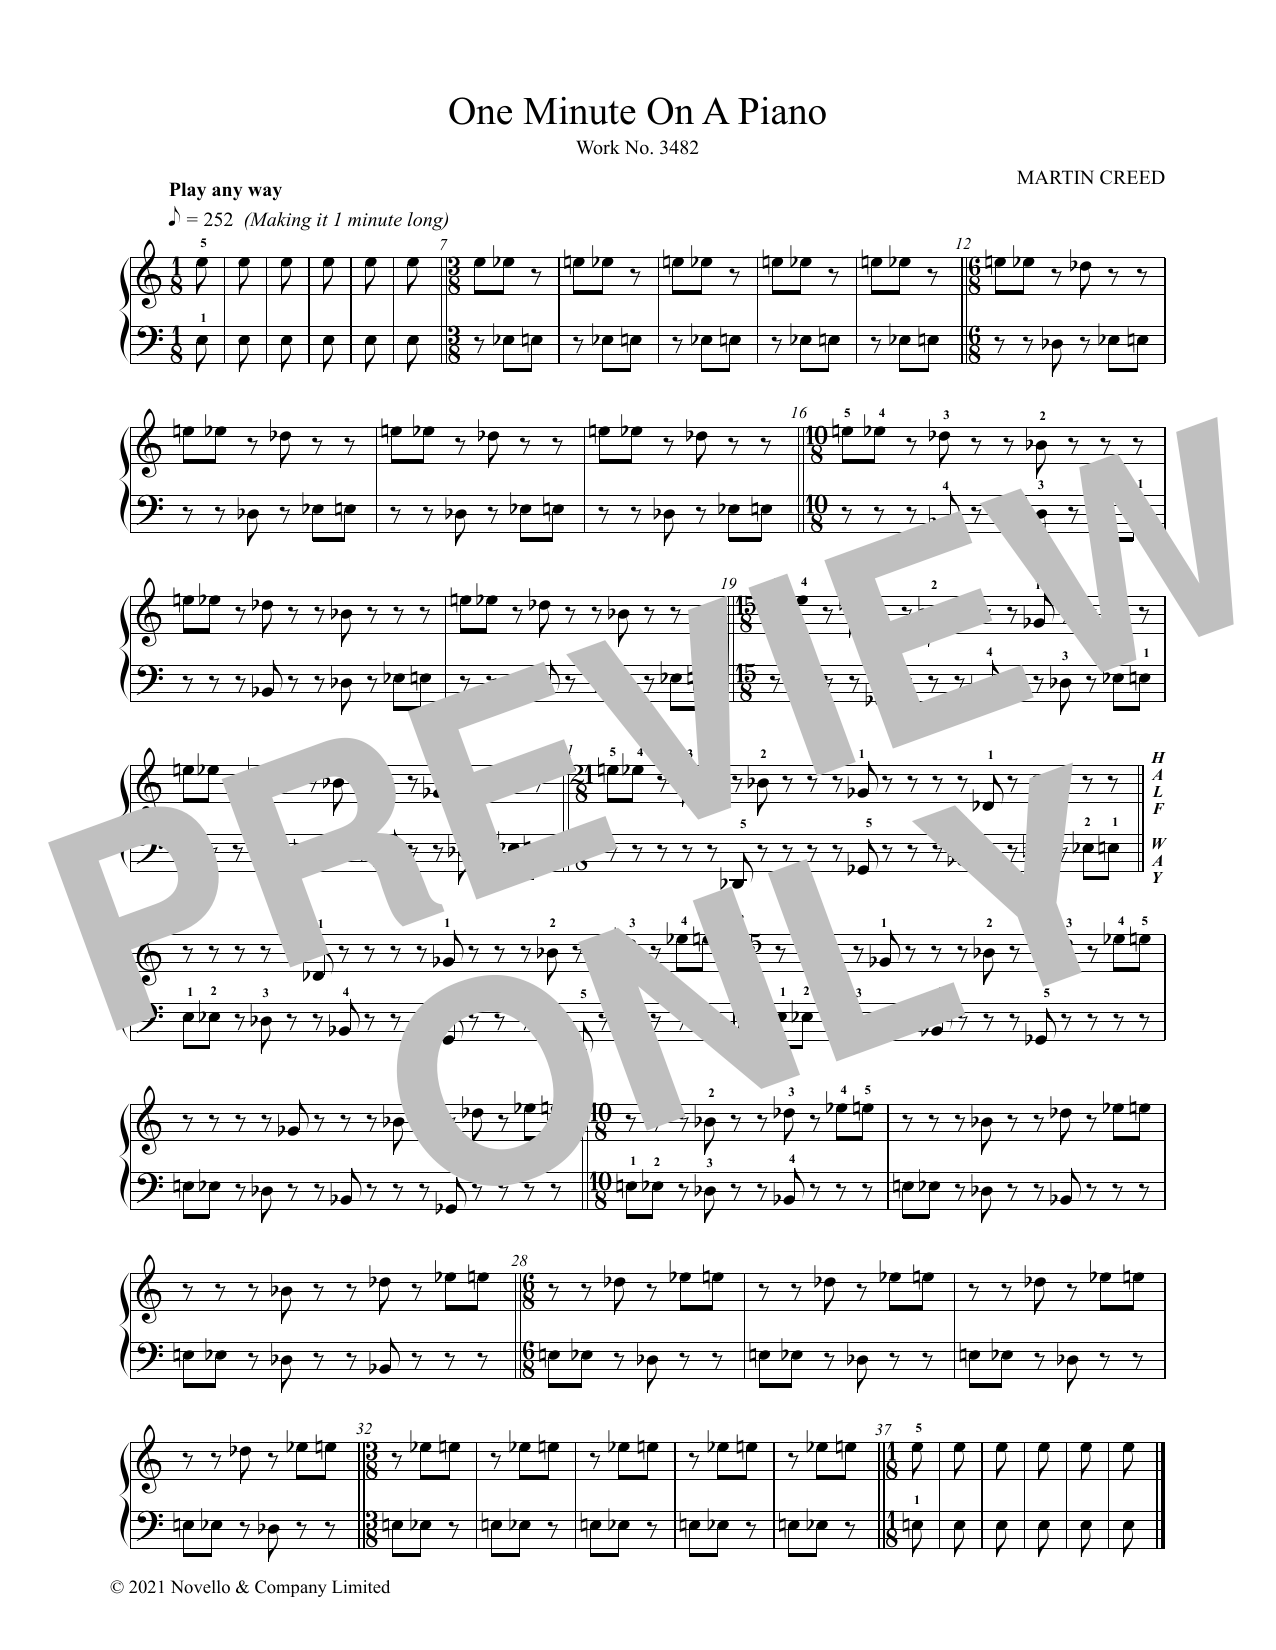 One Minute On A Piano Sheet Music